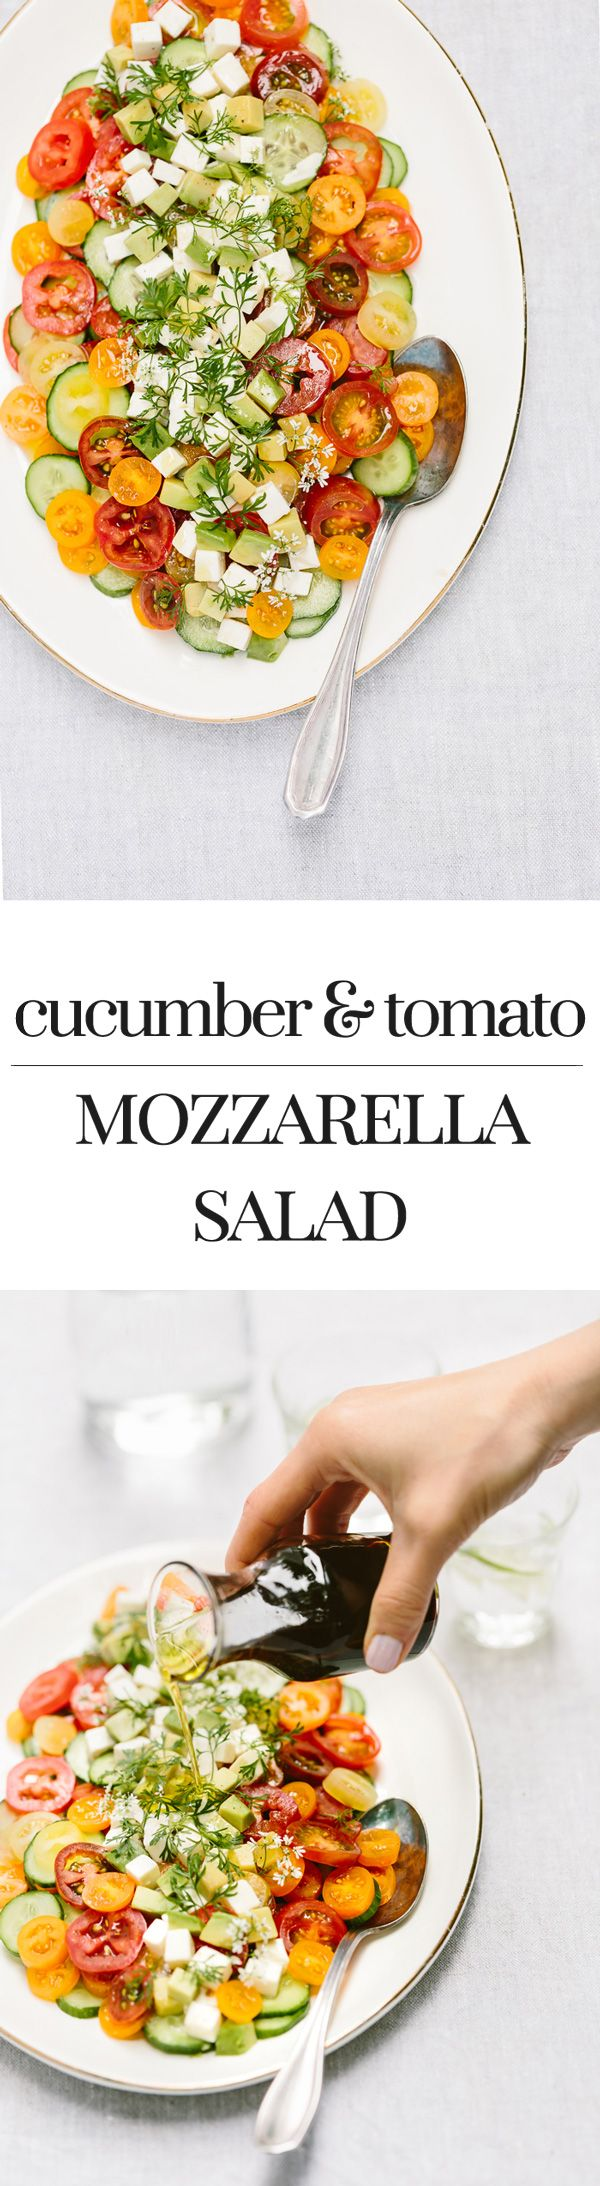 Cucumber Tomato Mozzarella Salad with Homemade Balsamic Vinegar: An easy to make vegetarian salad recipe made with the freshest summer produce.